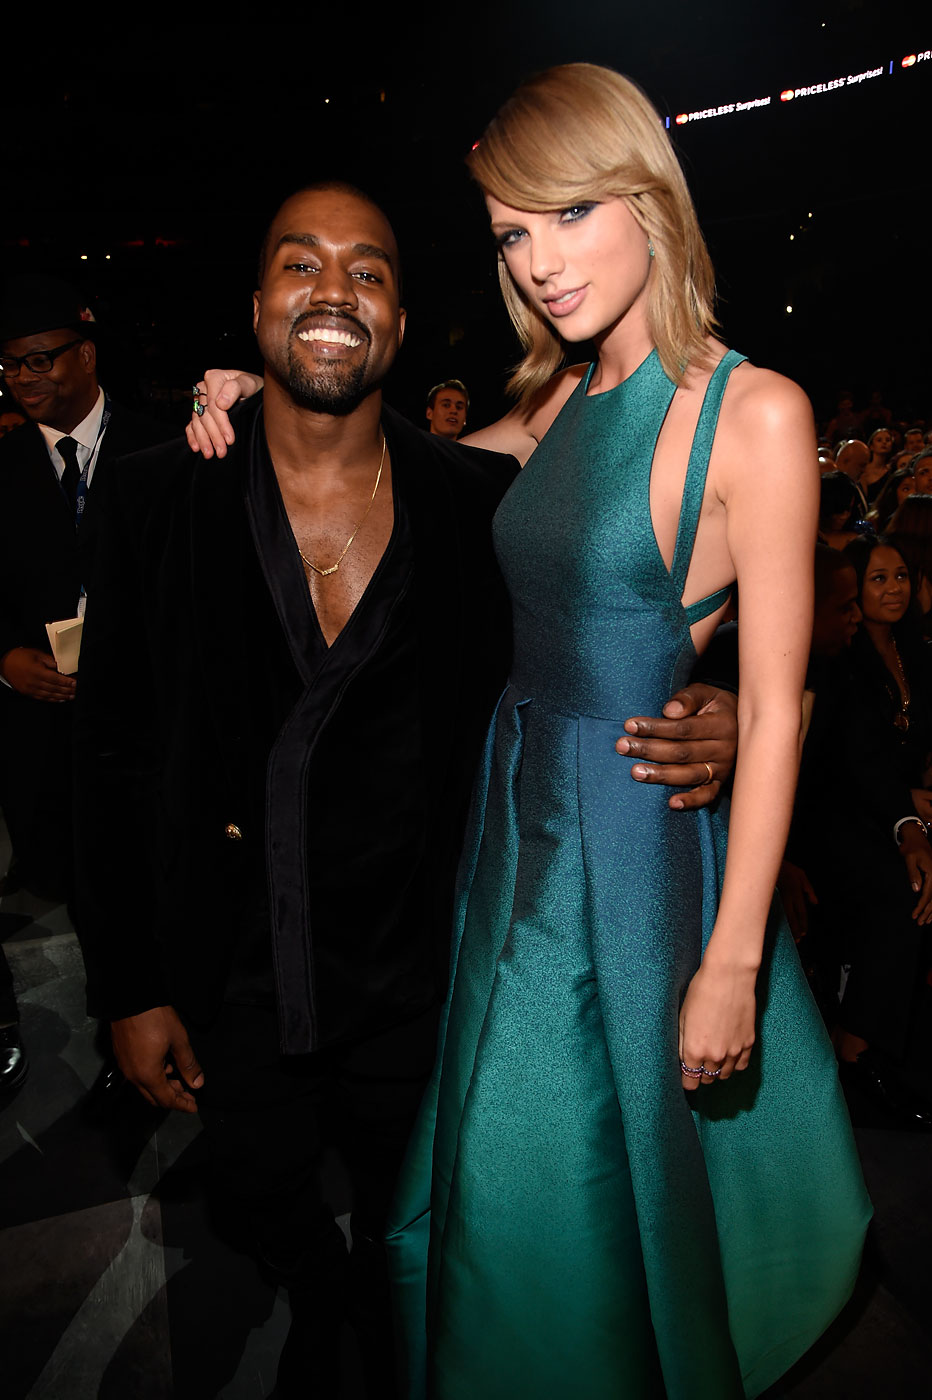 Kanye West and Taylor Swift attend the 57th Annual Grammy Awards in Los Angeles, Feb. 8, 2015.